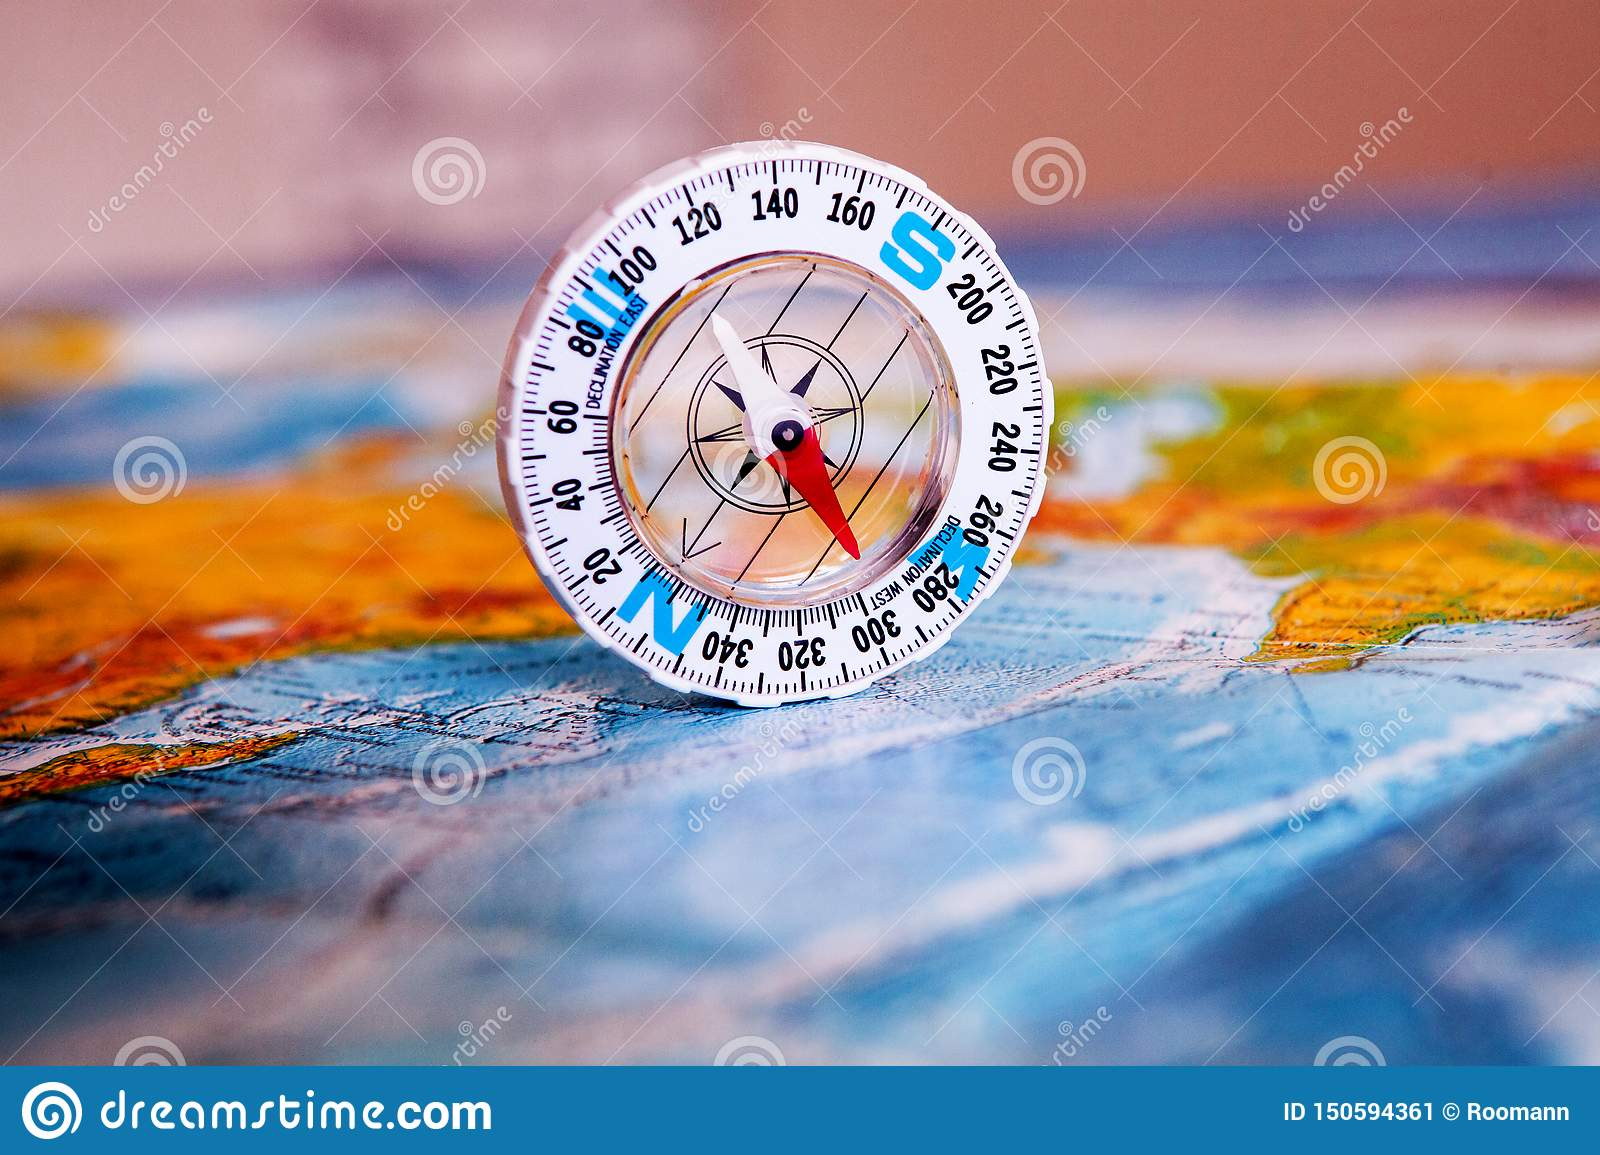 Compass on map. The magnetic compass is located on a geographic map. Satellites adventure. Travel concept.